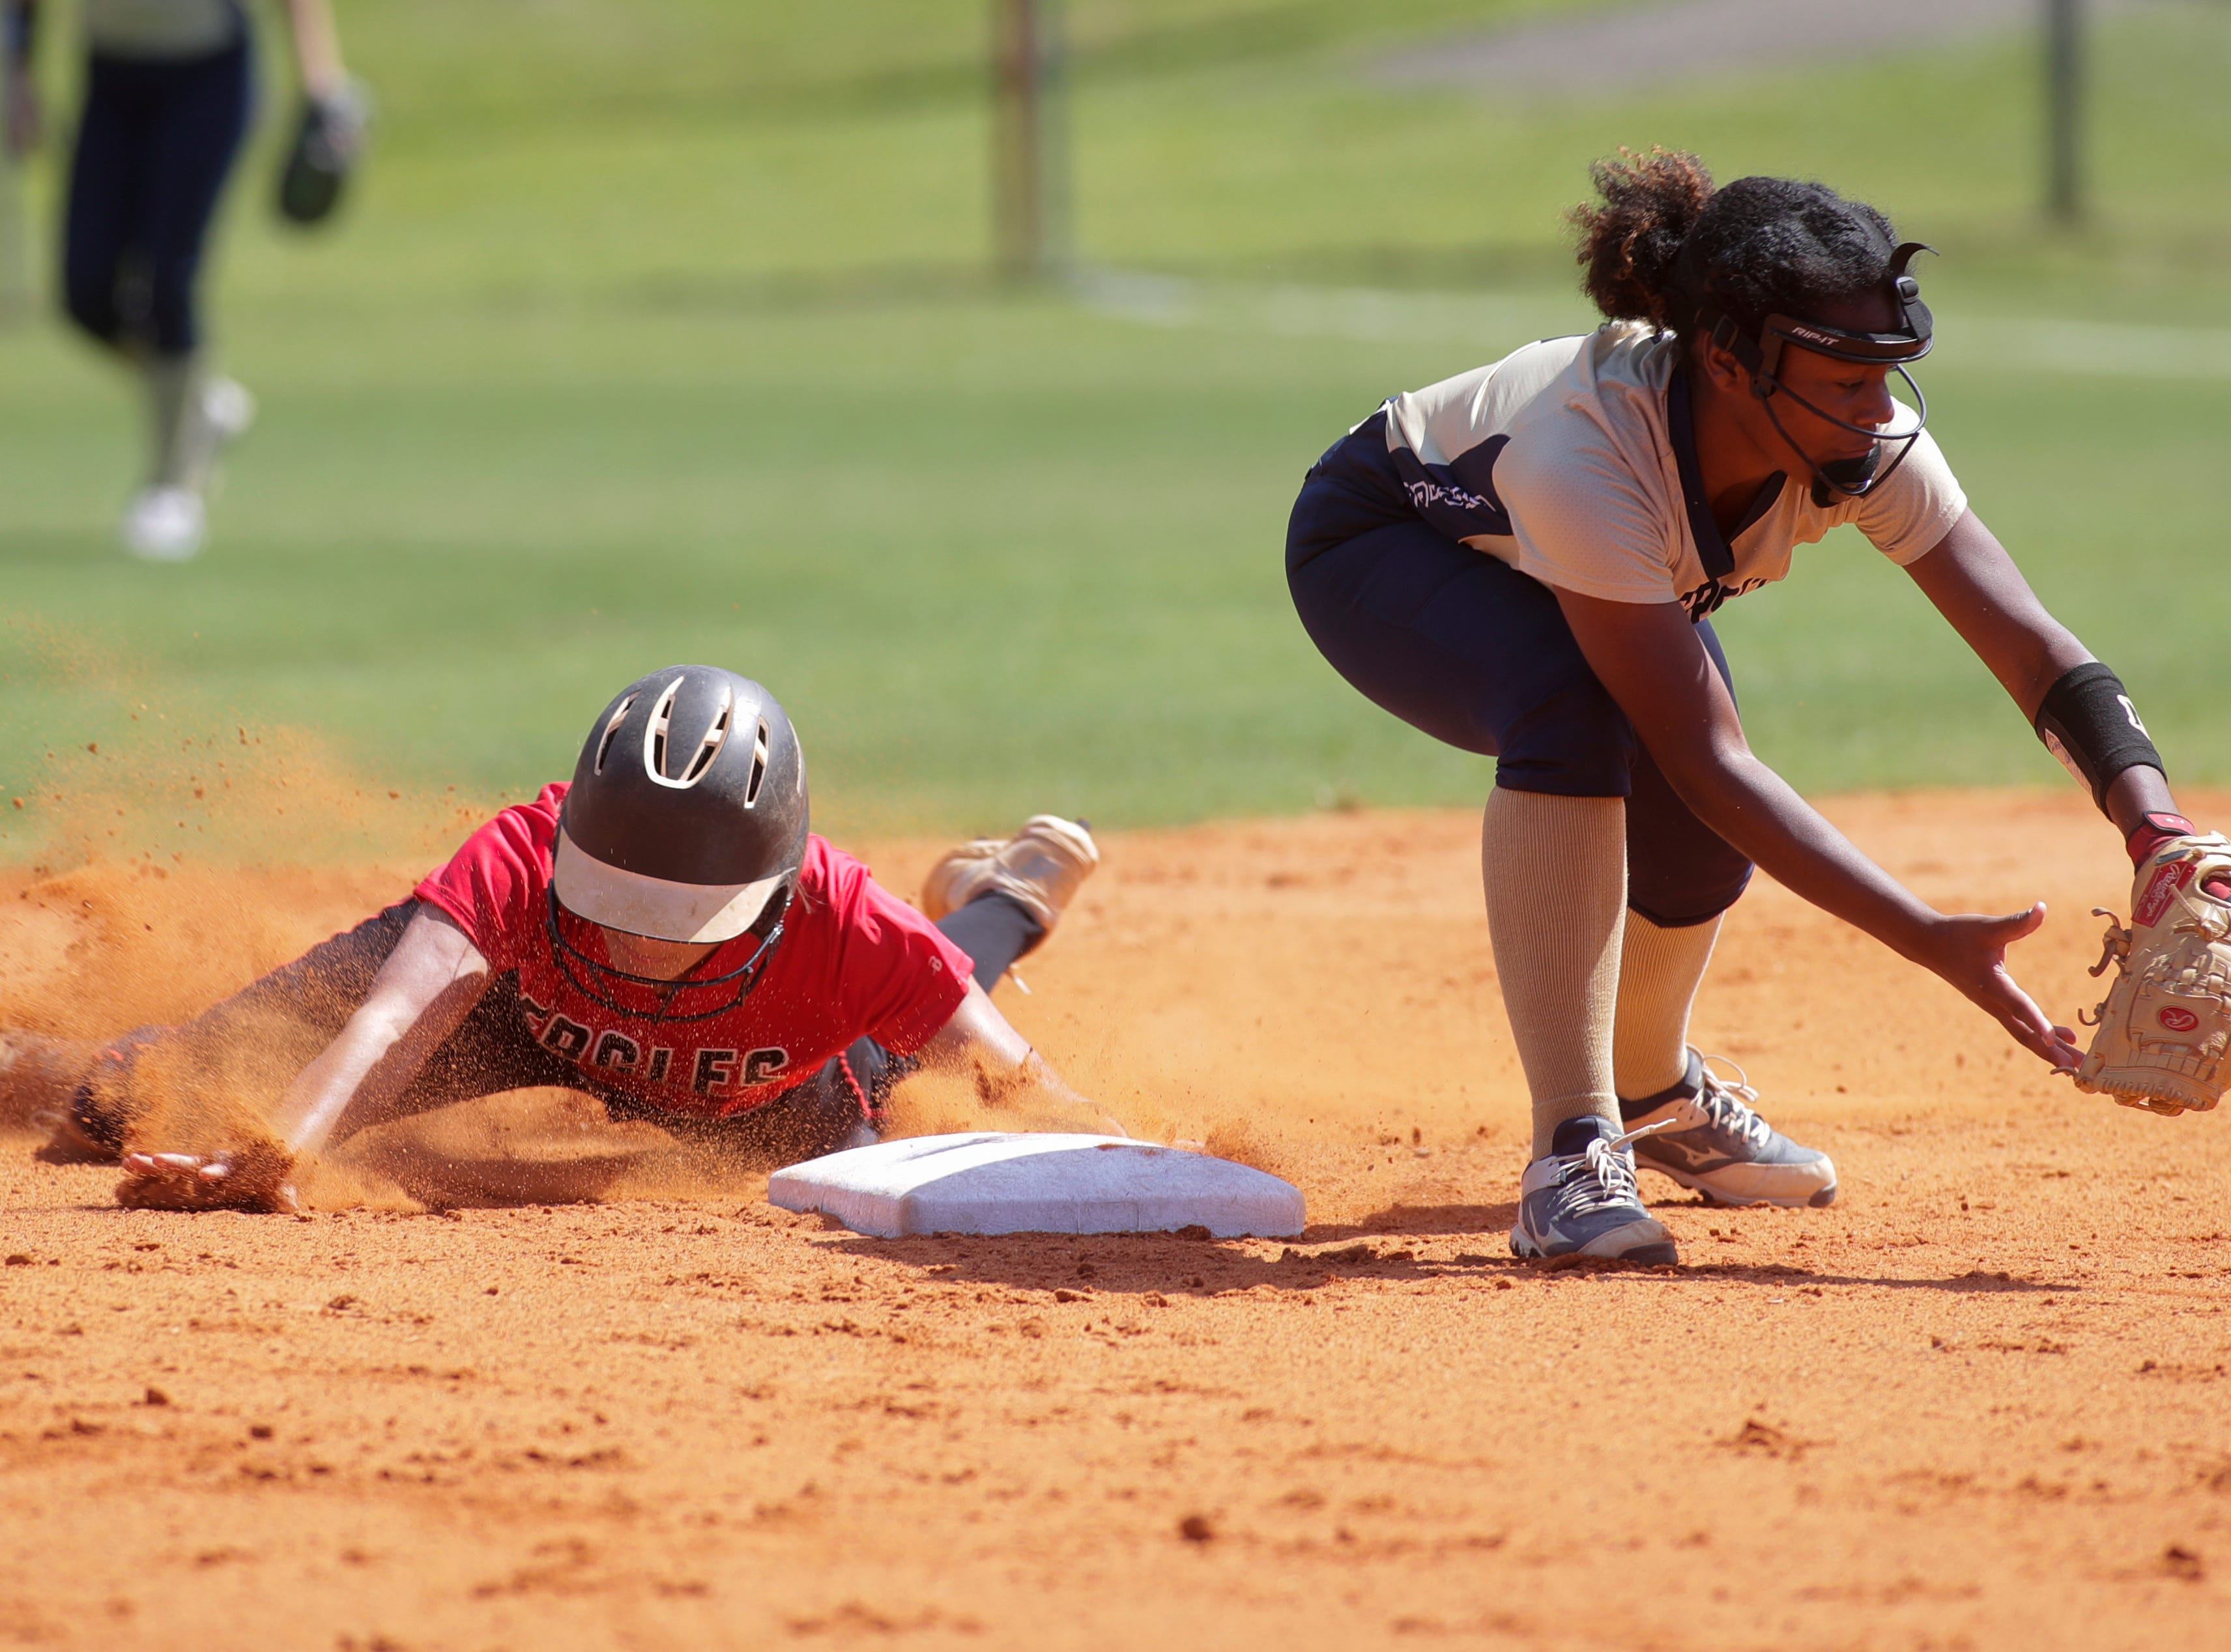 North Florida Christian's Chloe Culp (1) slides into second during the 1-3A regional final game between NFC and University Christian at NFC Tuesday, May 14, 2019. UC defeated NFC 16 to 11 to advance to the state tournament.